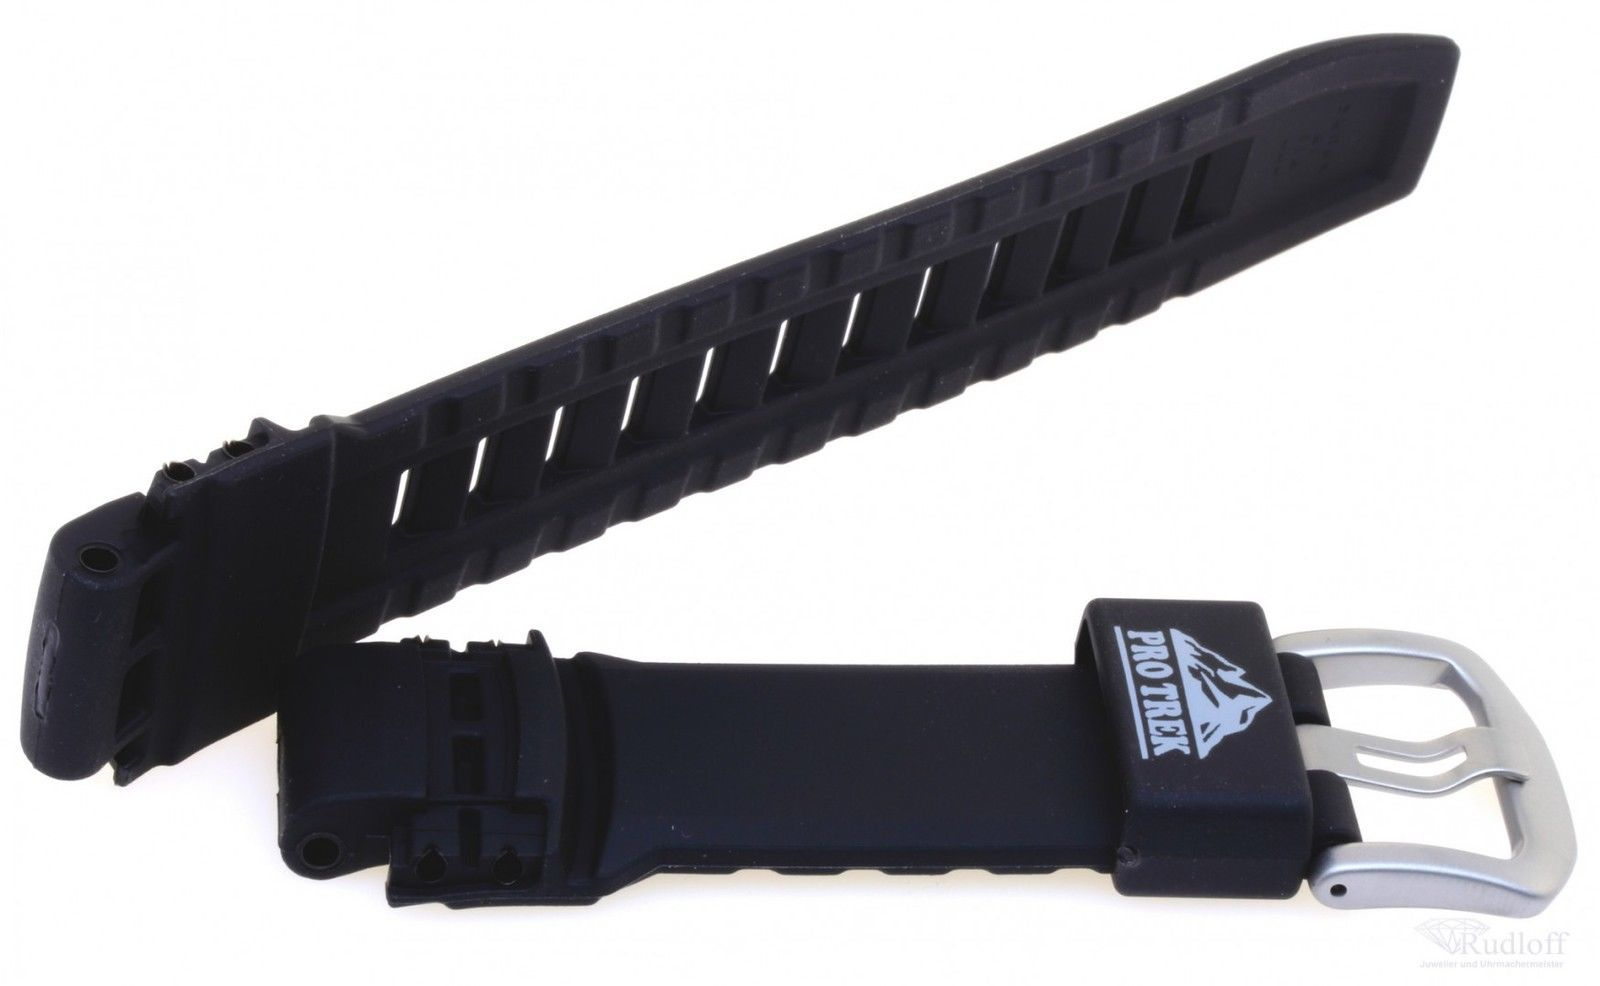 Genuine Replacement strap for ProTrek PRW-2500